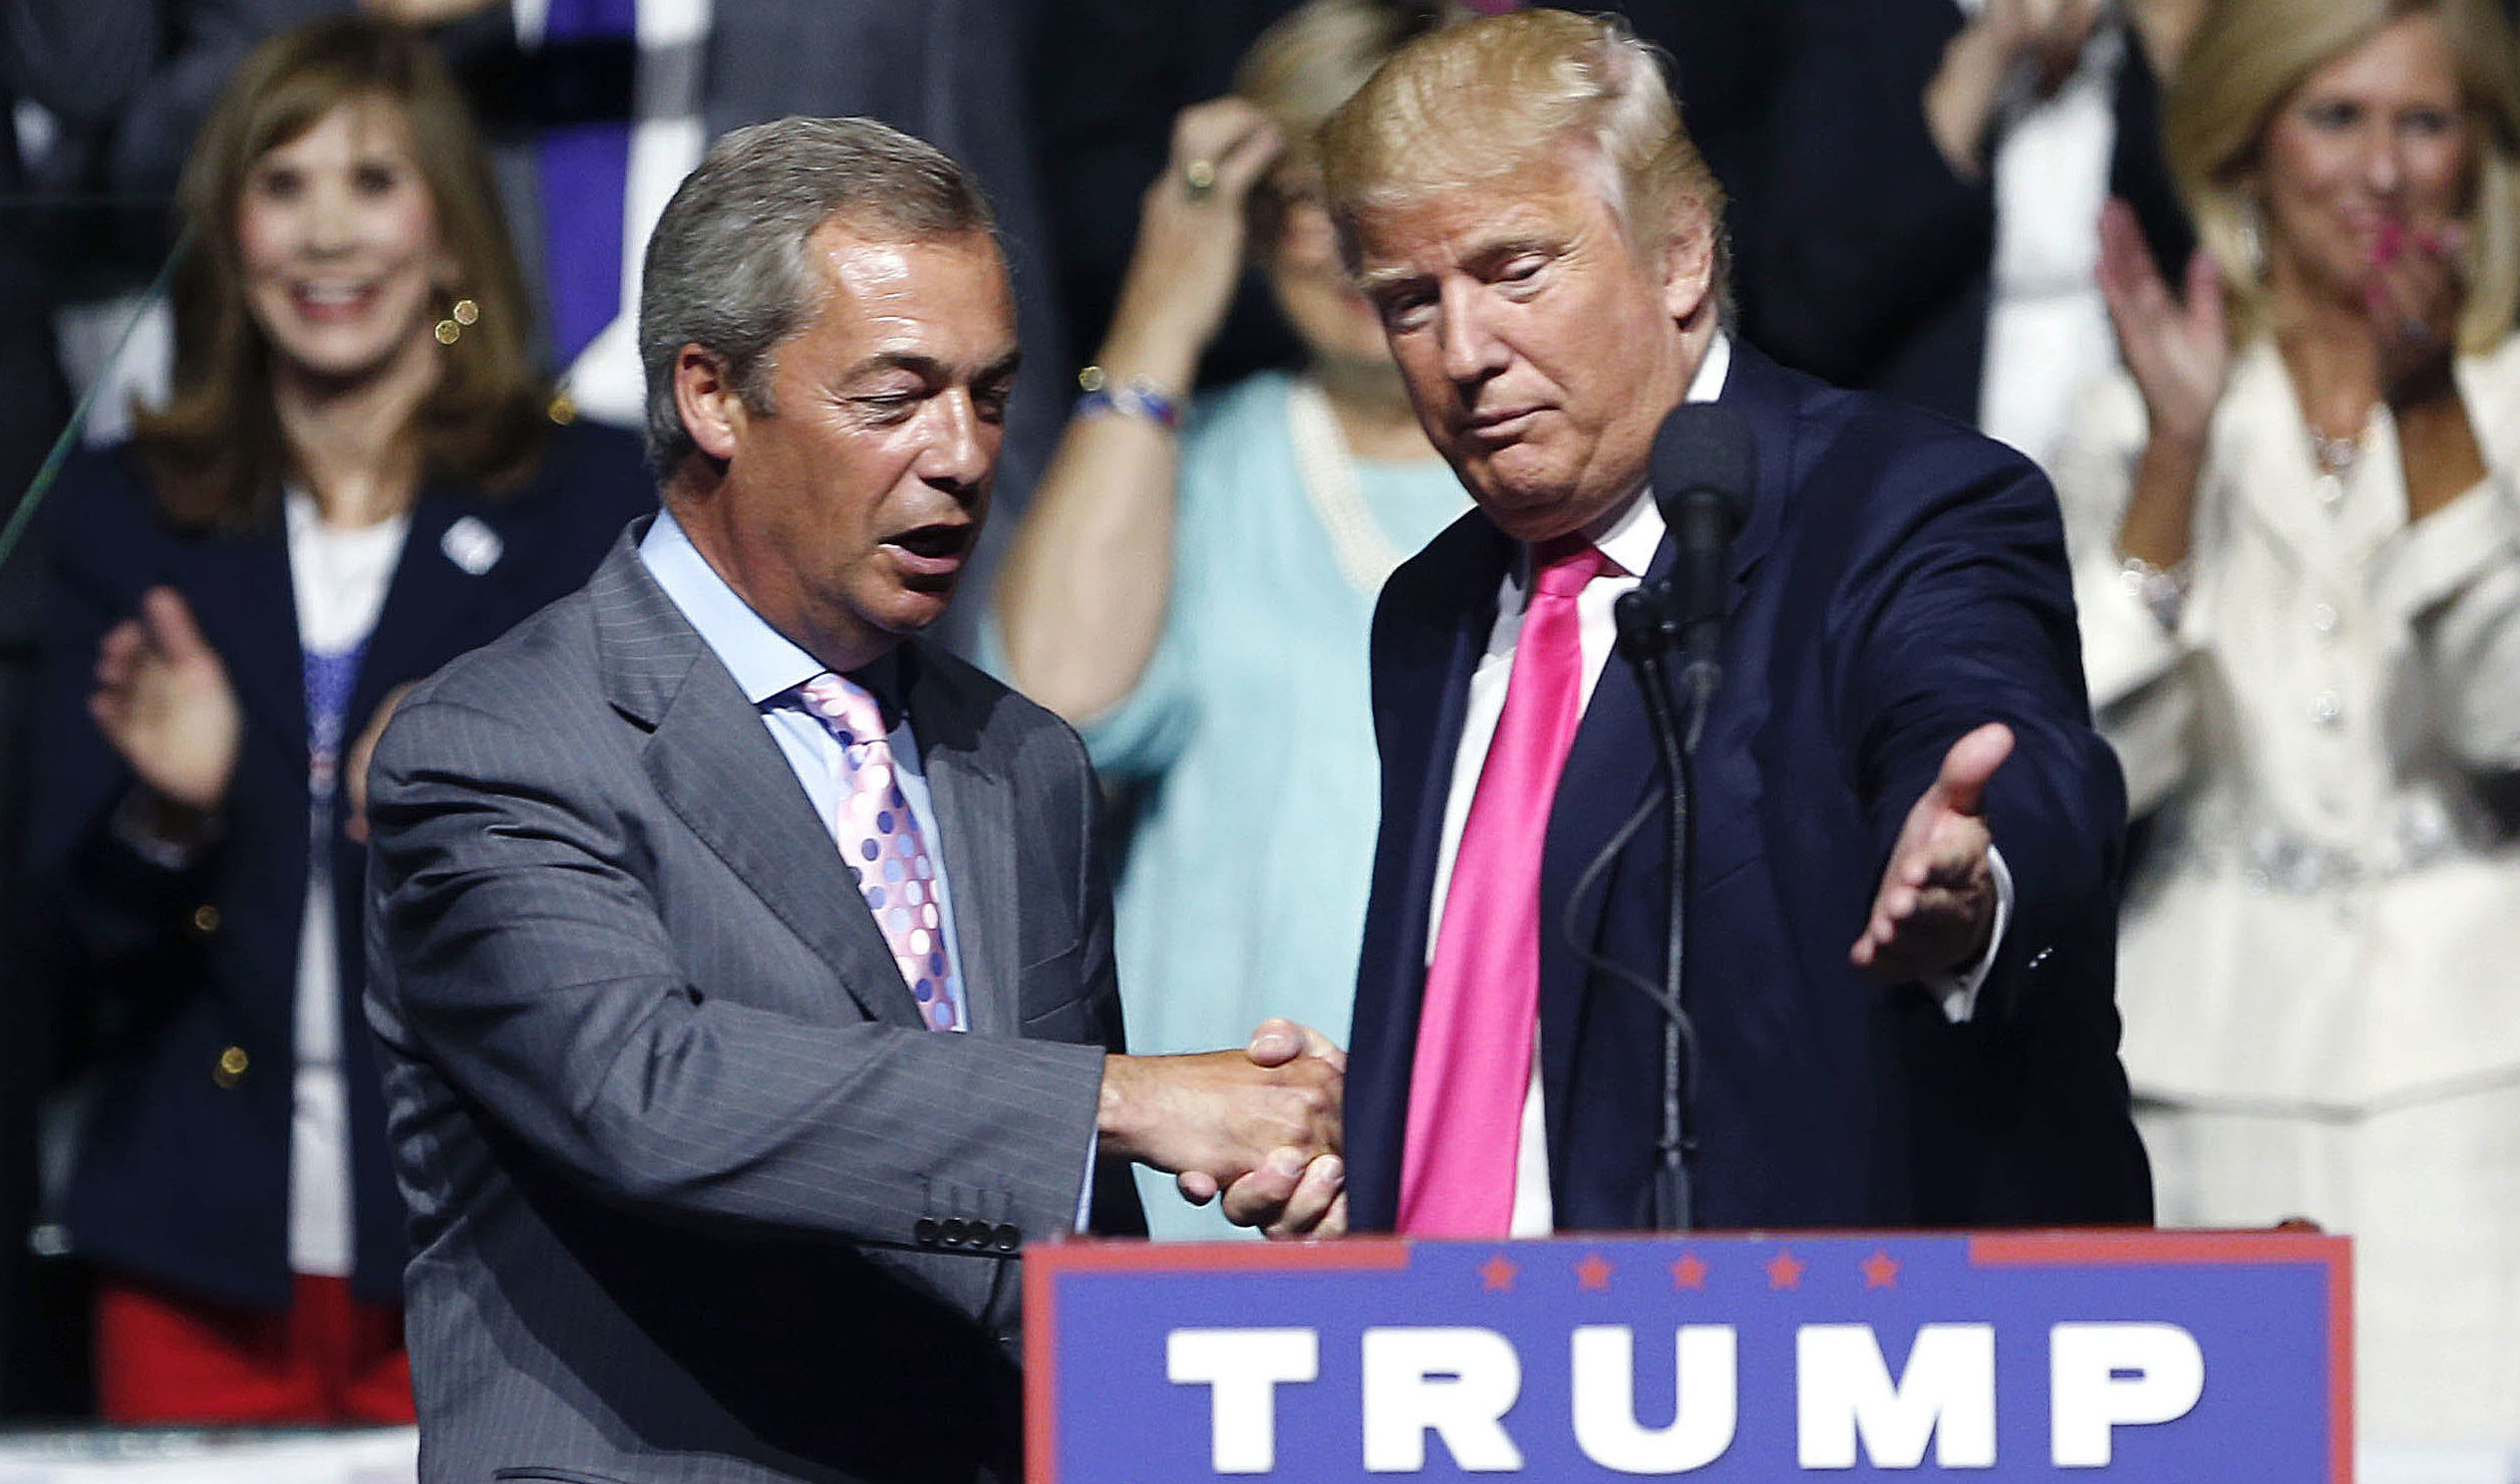 Brexiteer Nigel Farage joined Trump at a campaign rally in August. Photo: Gerald Herbert / AP